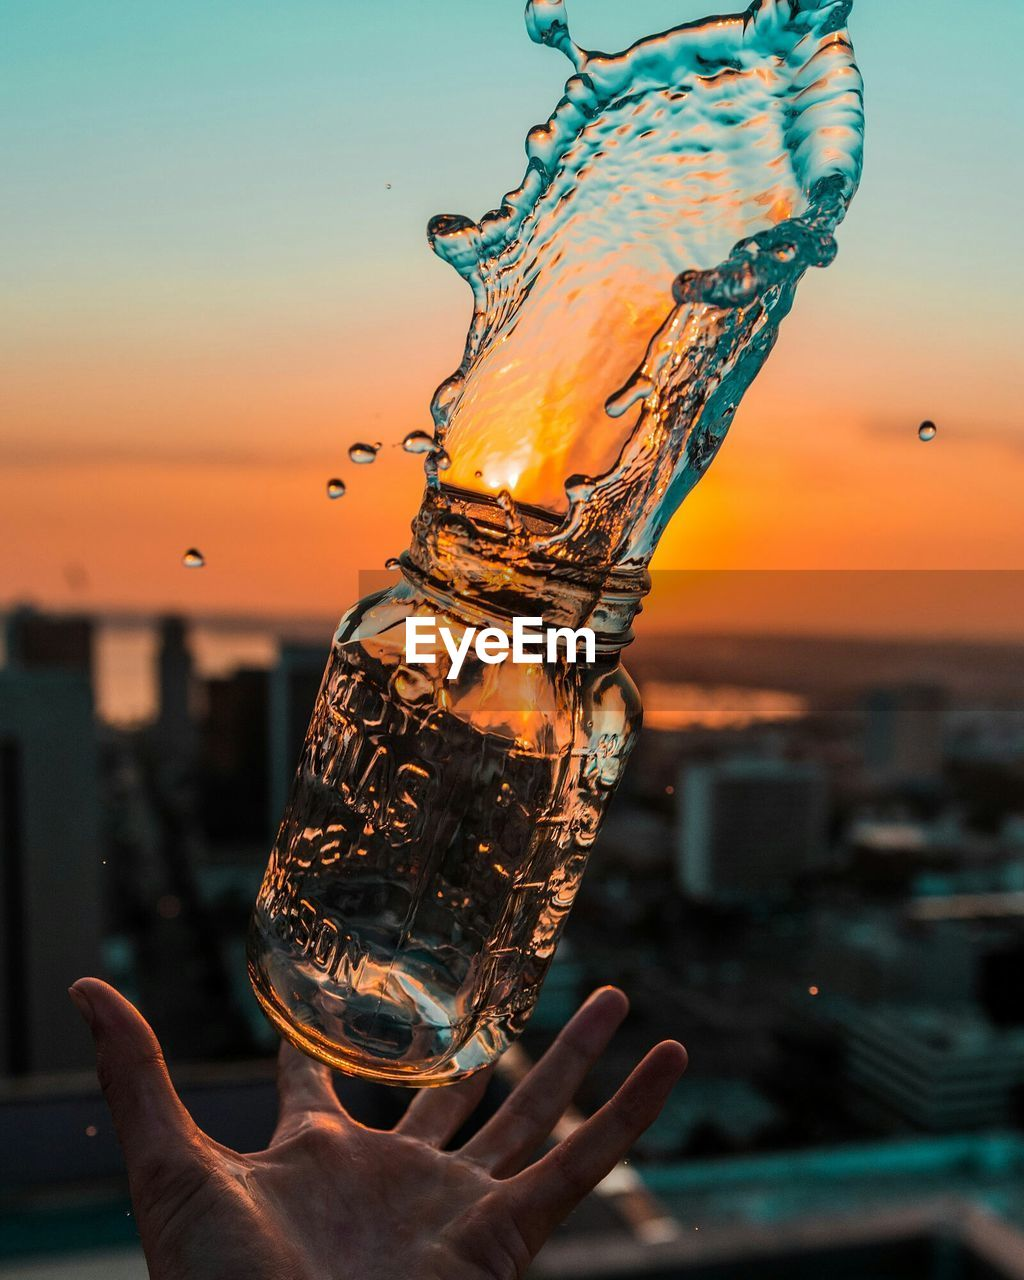 Cropped Image Of Hand Catching Bottle With Splashed Water Against Sky During Sunset